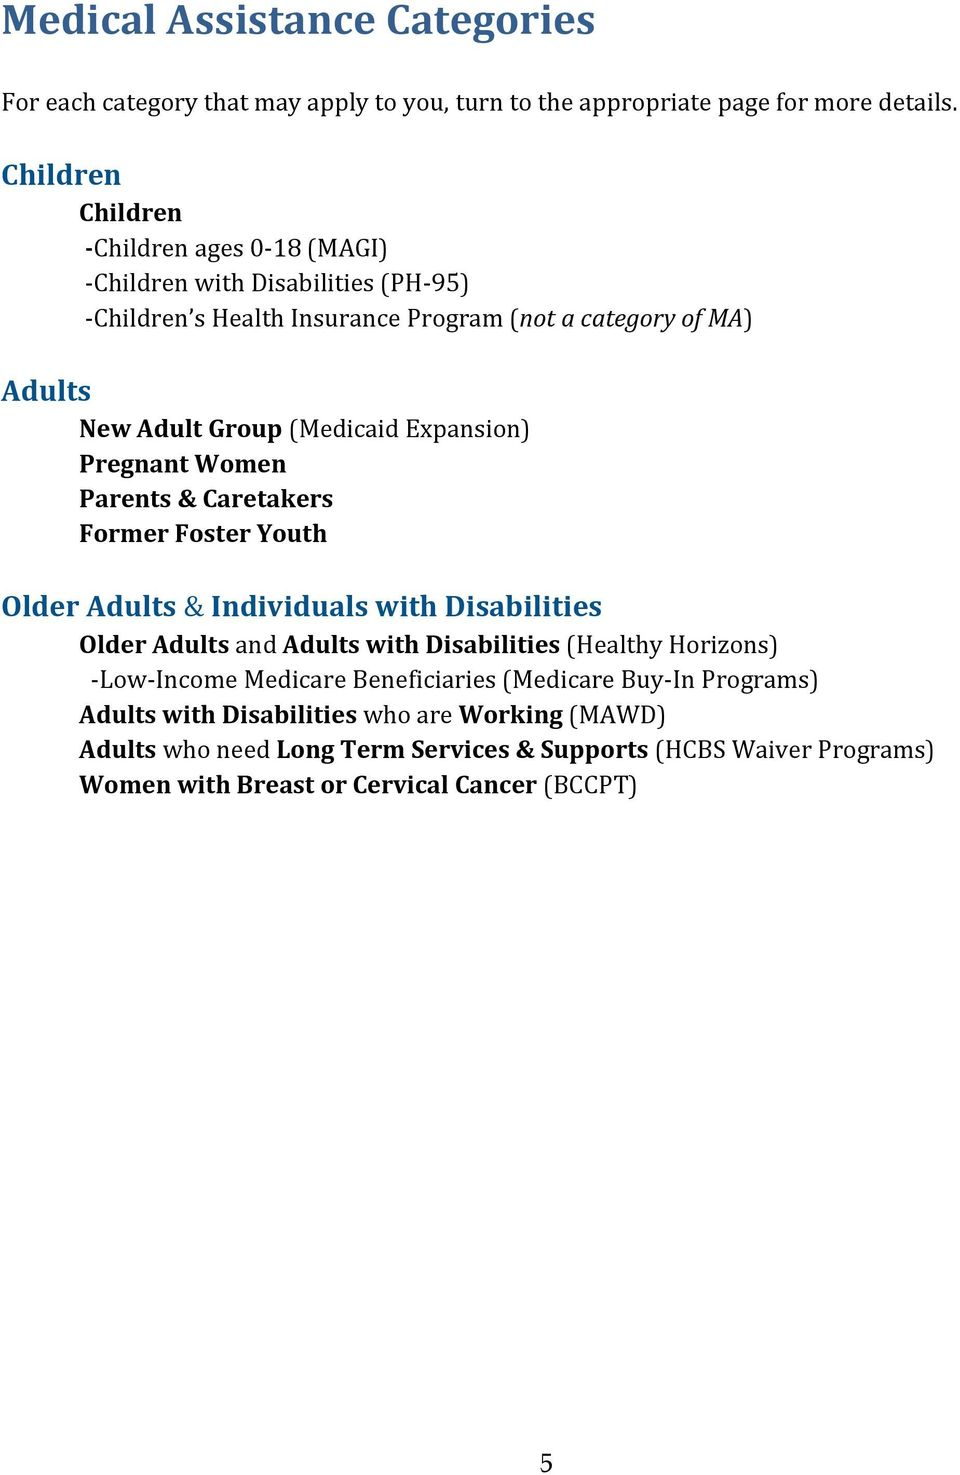 (Medicaid Expansion) Pregnant Women Parents & Caretakers Former Foster Youth Older Adults & Individuals with Disabilities Older Adults and Adults with Disabilities (Healthy